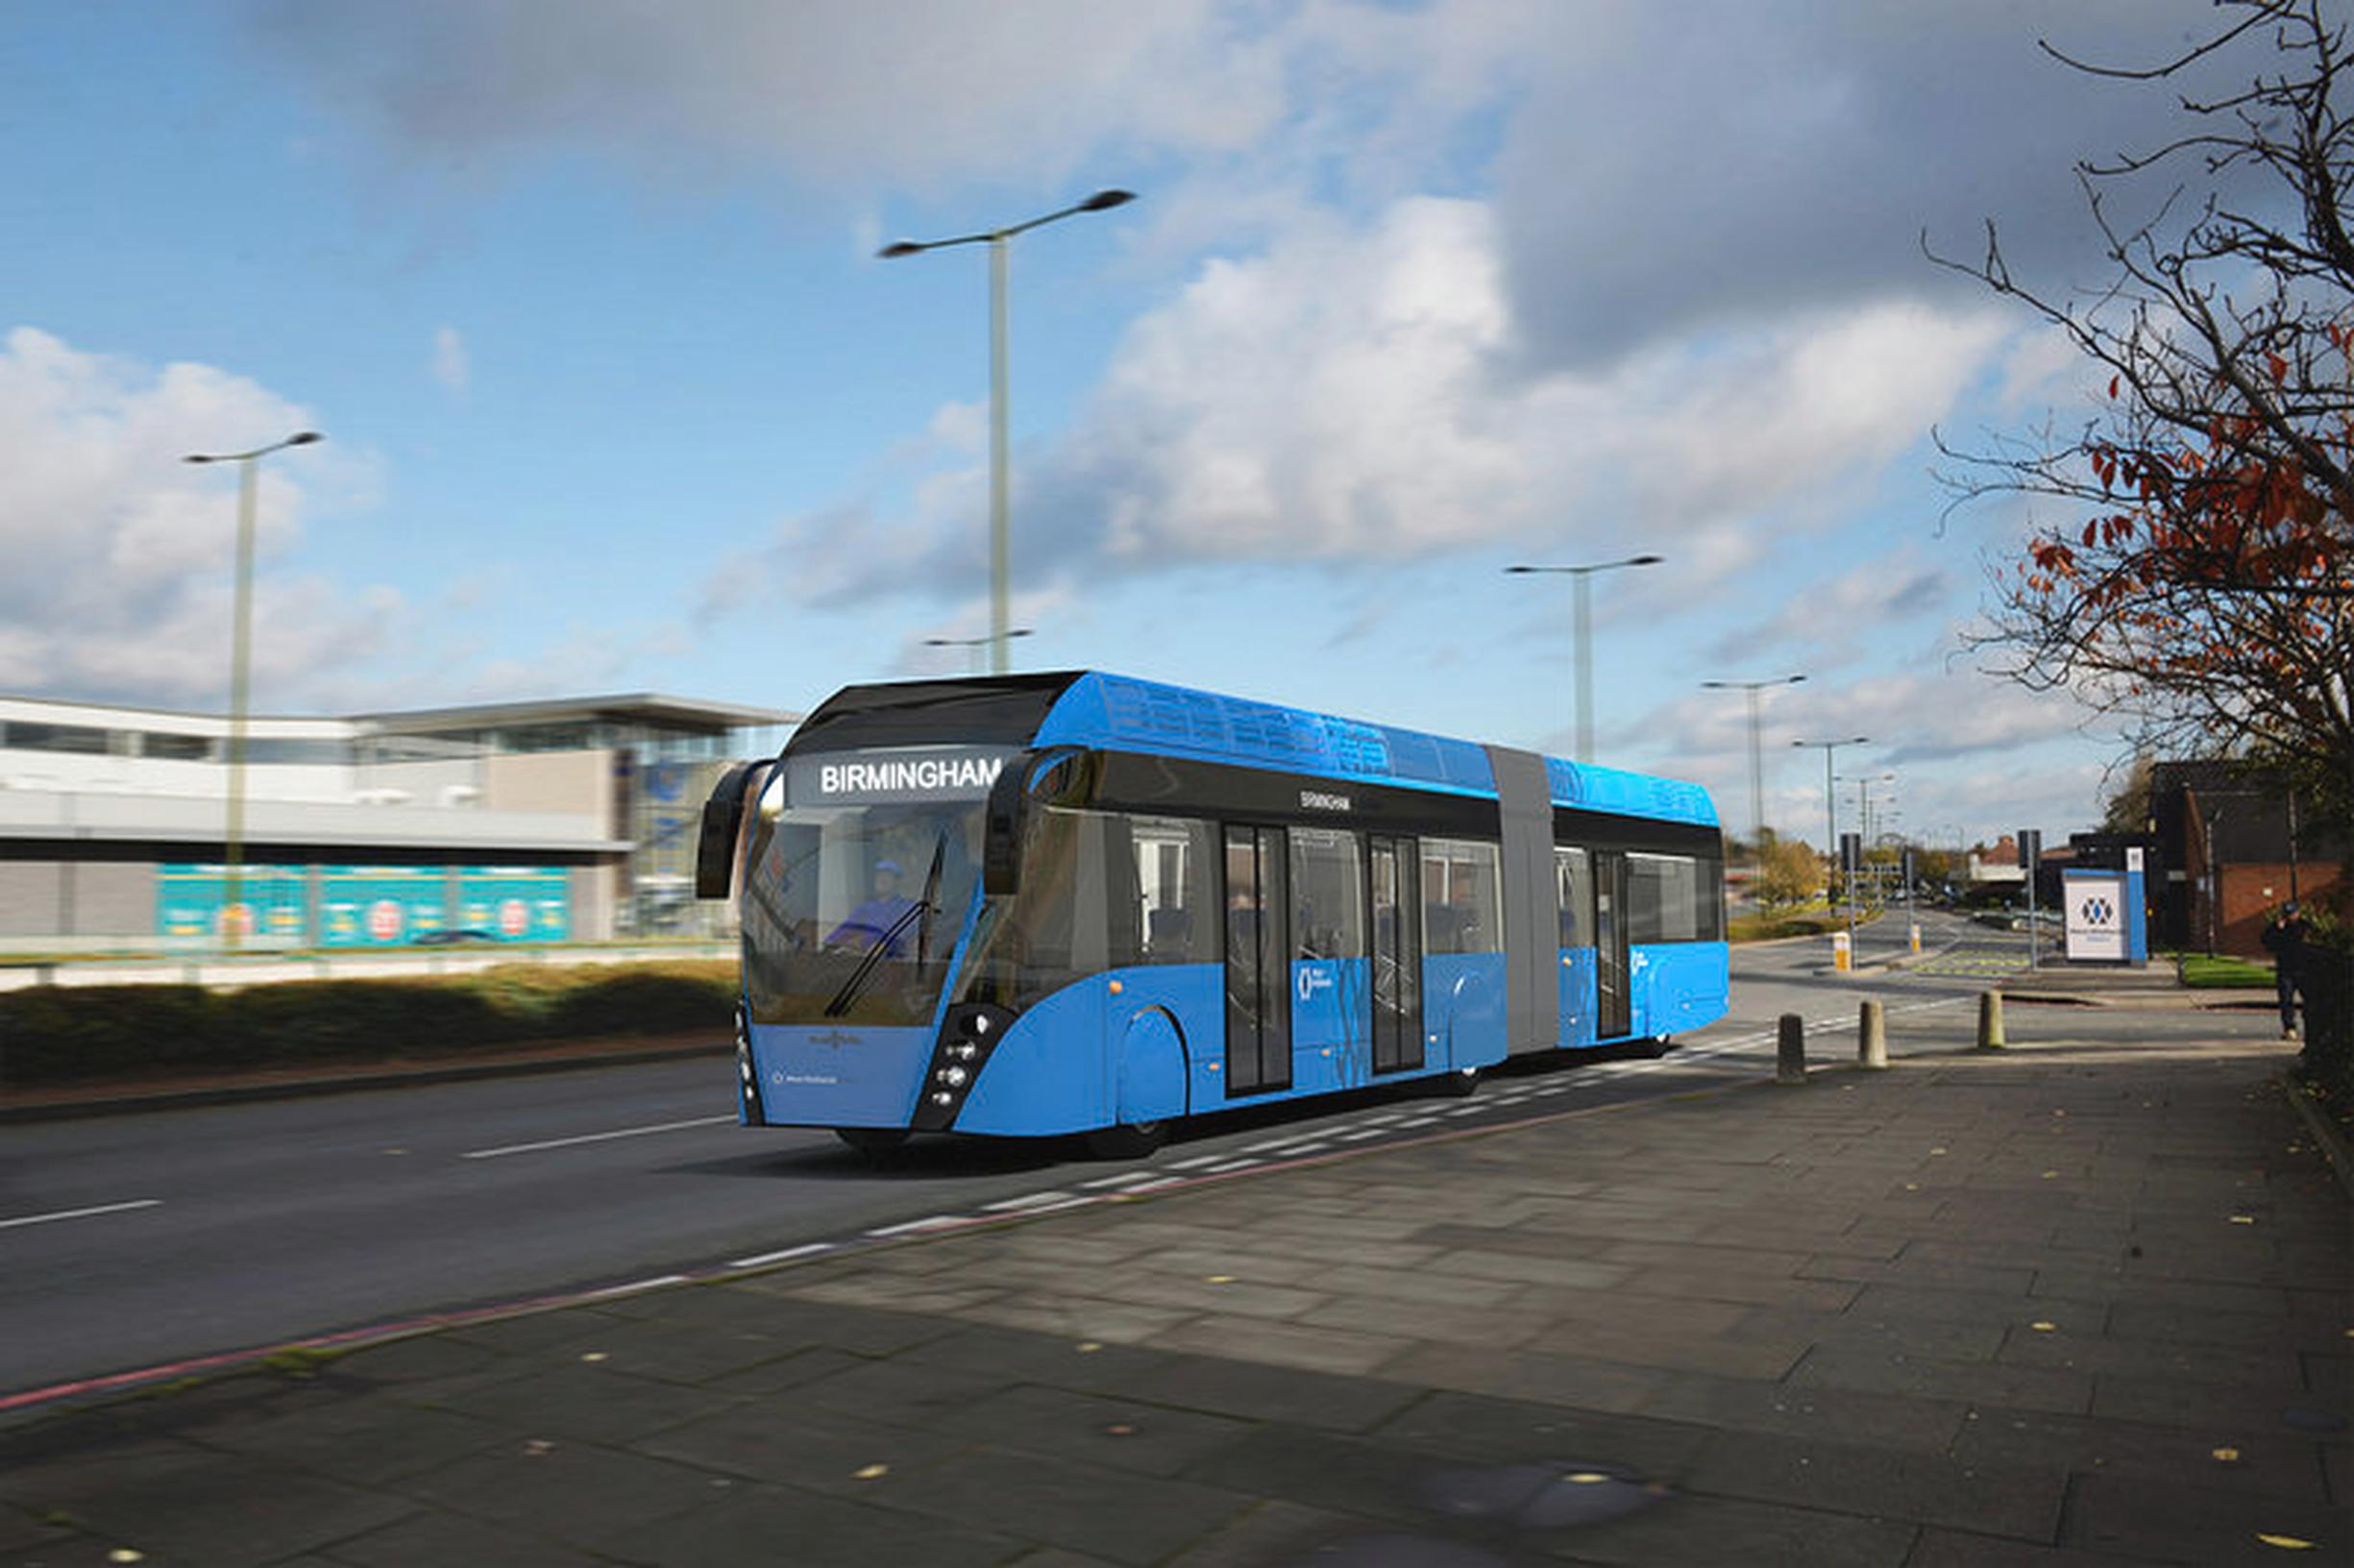 An artist's impression of one of the fleet of 80 Bus Rapid Transit vehicles set to be procured. They will be 18m long and feature low noise, low vibration and low emissions as standard